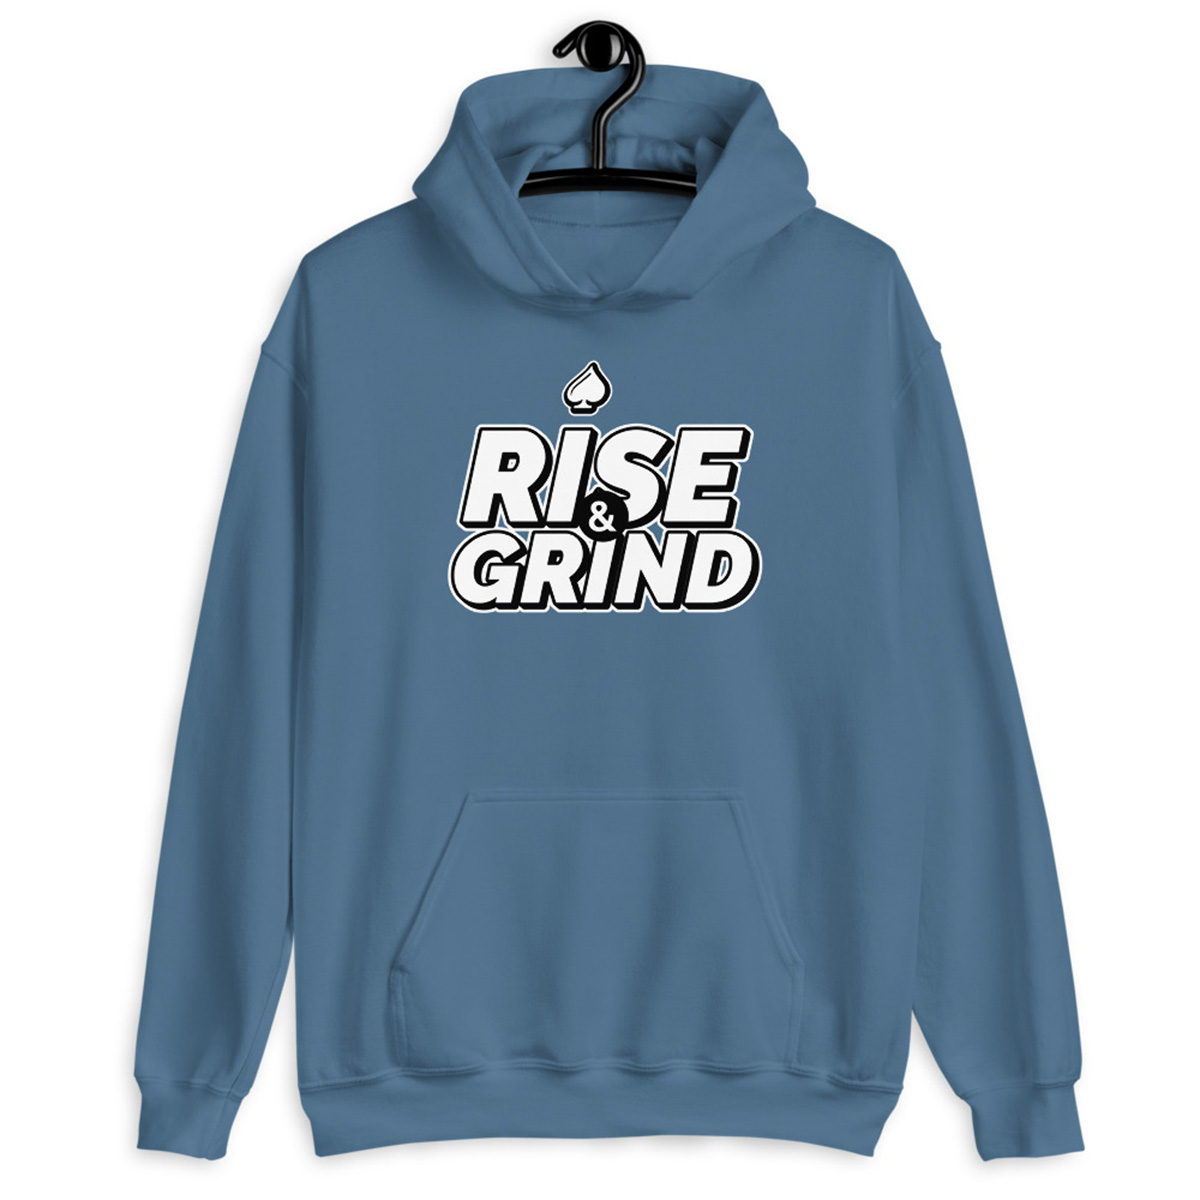 Rise and Grind Poker Hoodie-Indigo Blue